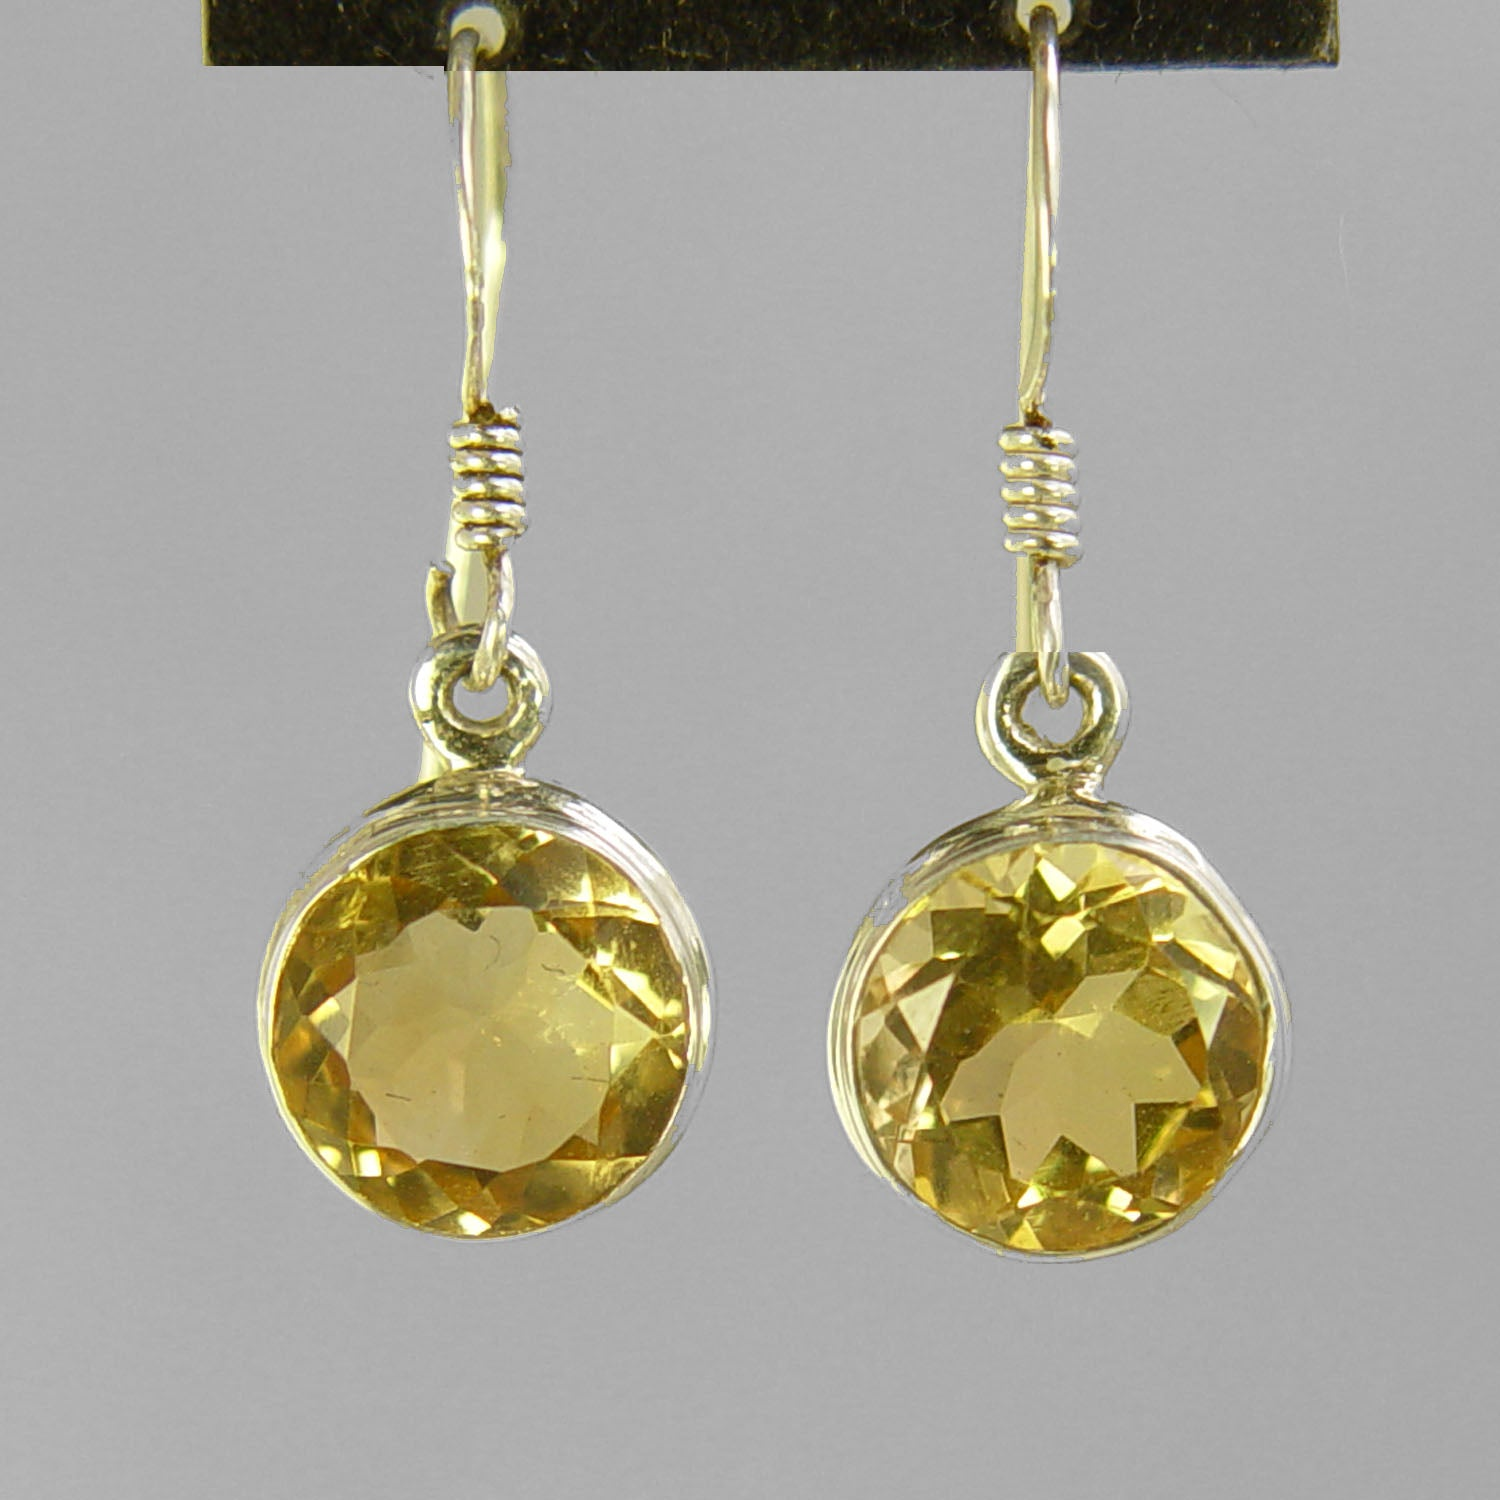 Citrine 6 ctw Faceted Round Bezel Set Earrings